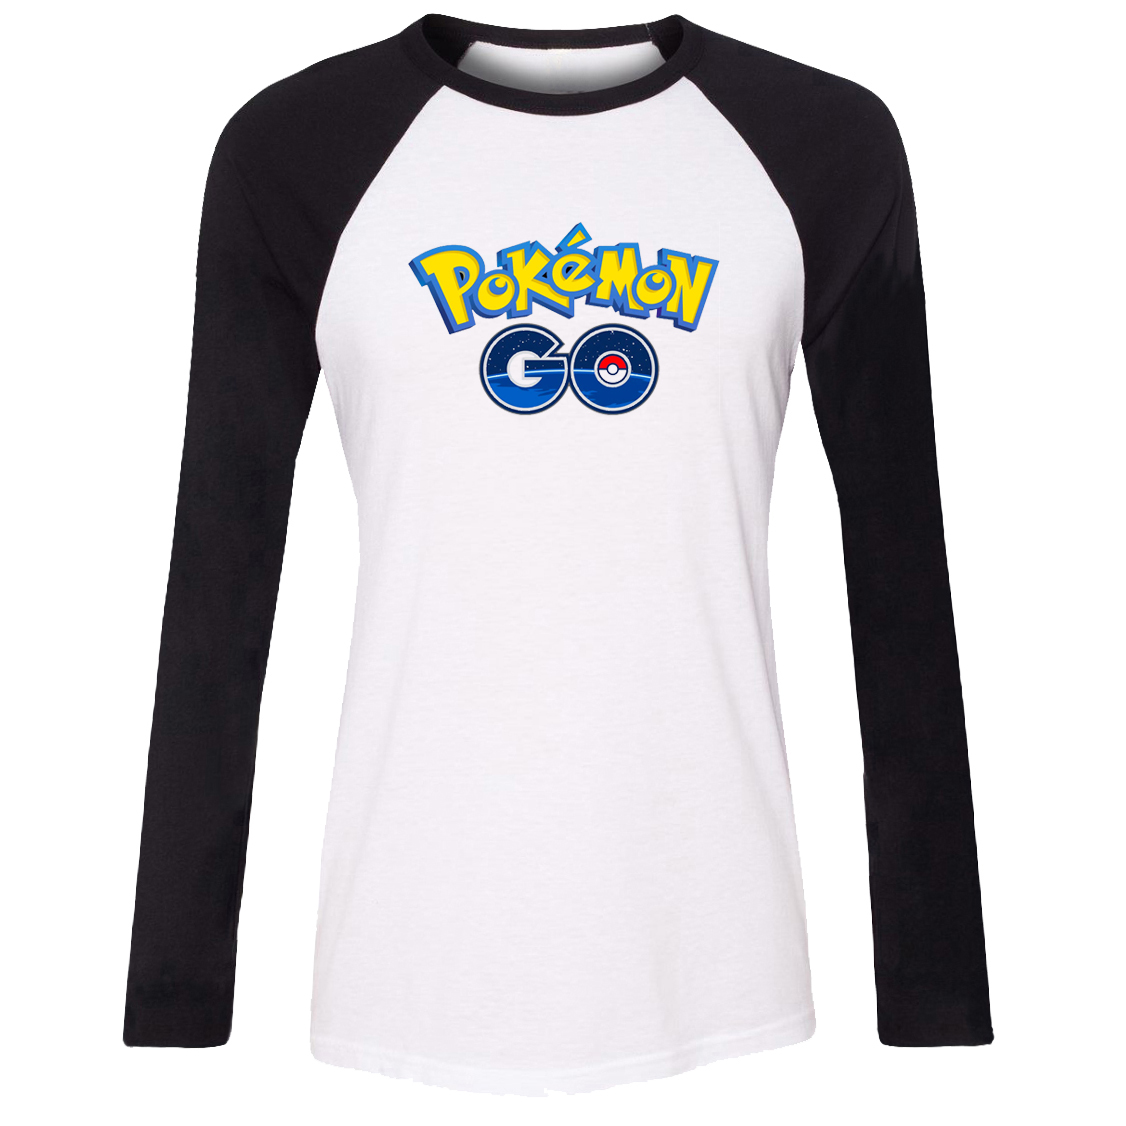 iDzn Women T-shirt Pokemon Go Game Fans Poke Ball PokeBall Pikachu Pattern Raglan Long Sleeve Girl T shirt print Lady Tee Tops